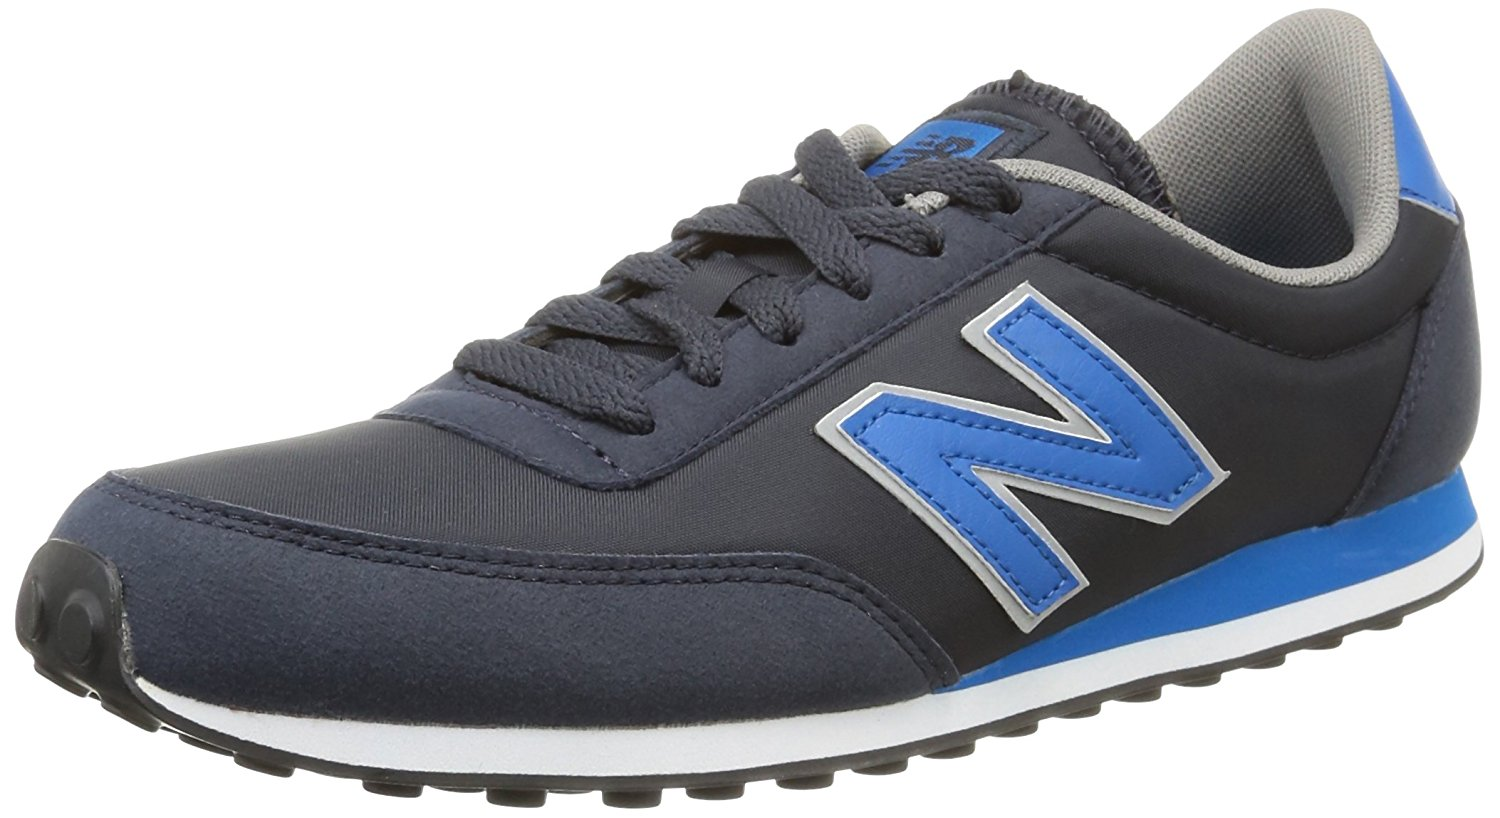 New Balance Mens U410cpa Low-Top Lace-Up Trainers Blue Size 44